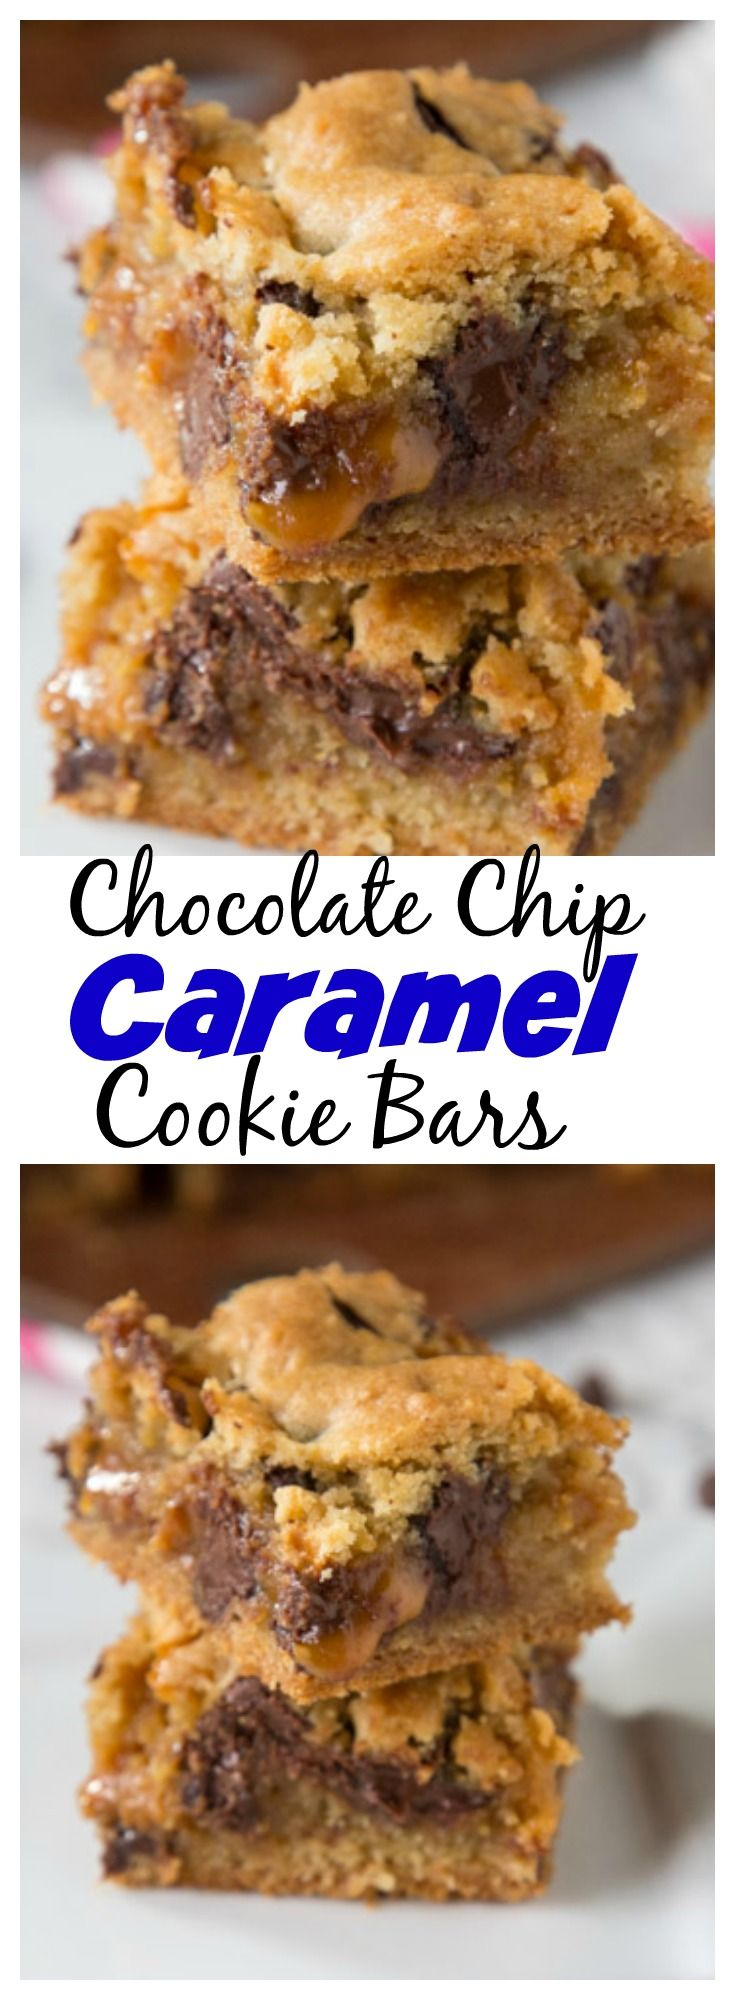 Chocolate Chip Caramel Cookie Bars   classic chocolate chip cookies baked in to bars with a gooey layer of caramel in the middle! is part of Caramel cookies -